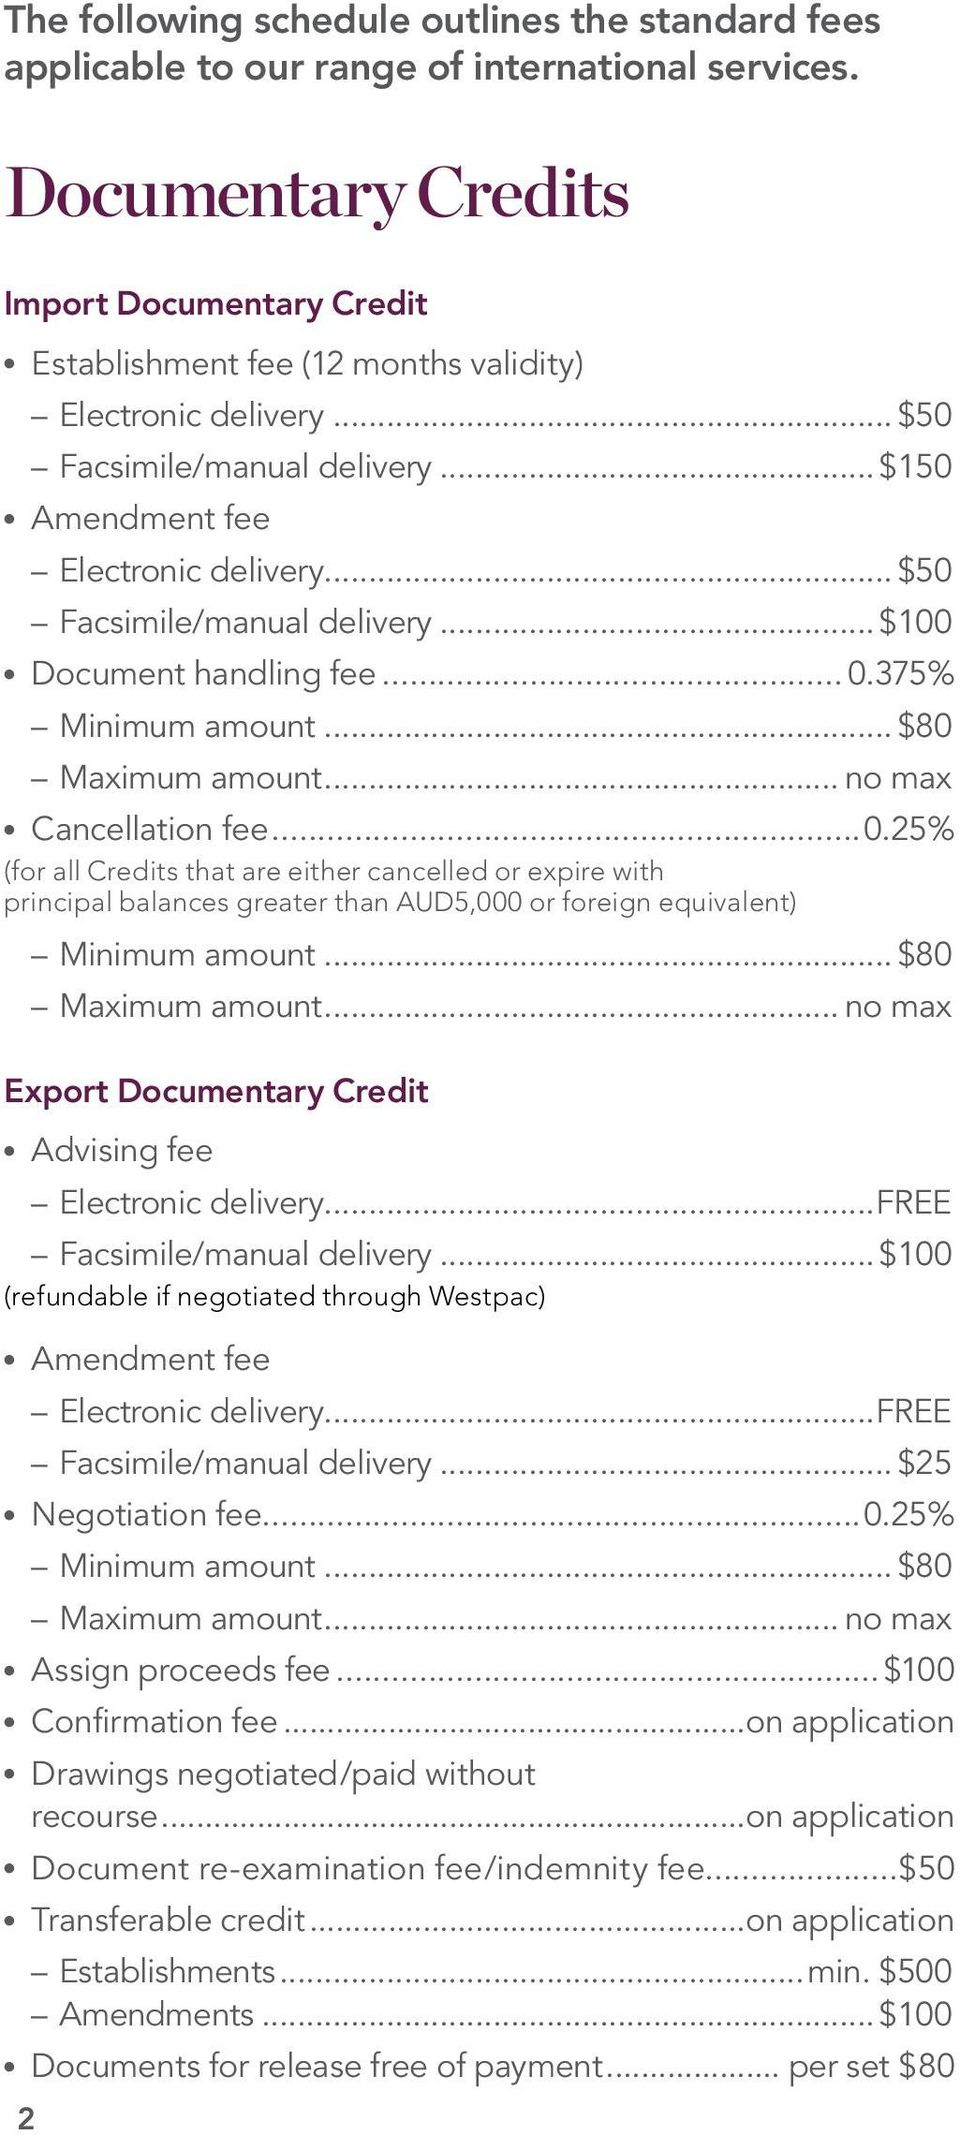 .. $50 Facsimile/manual delivery... $100 Document handling fee... 0.375% Minimum amount... $80 Maximum amount... no max Cancellation fee...0.25% (for all Credits that are either cancelled or expire with principal balances greater than AUD5,000 or foreign equivalent) Minimum amount.